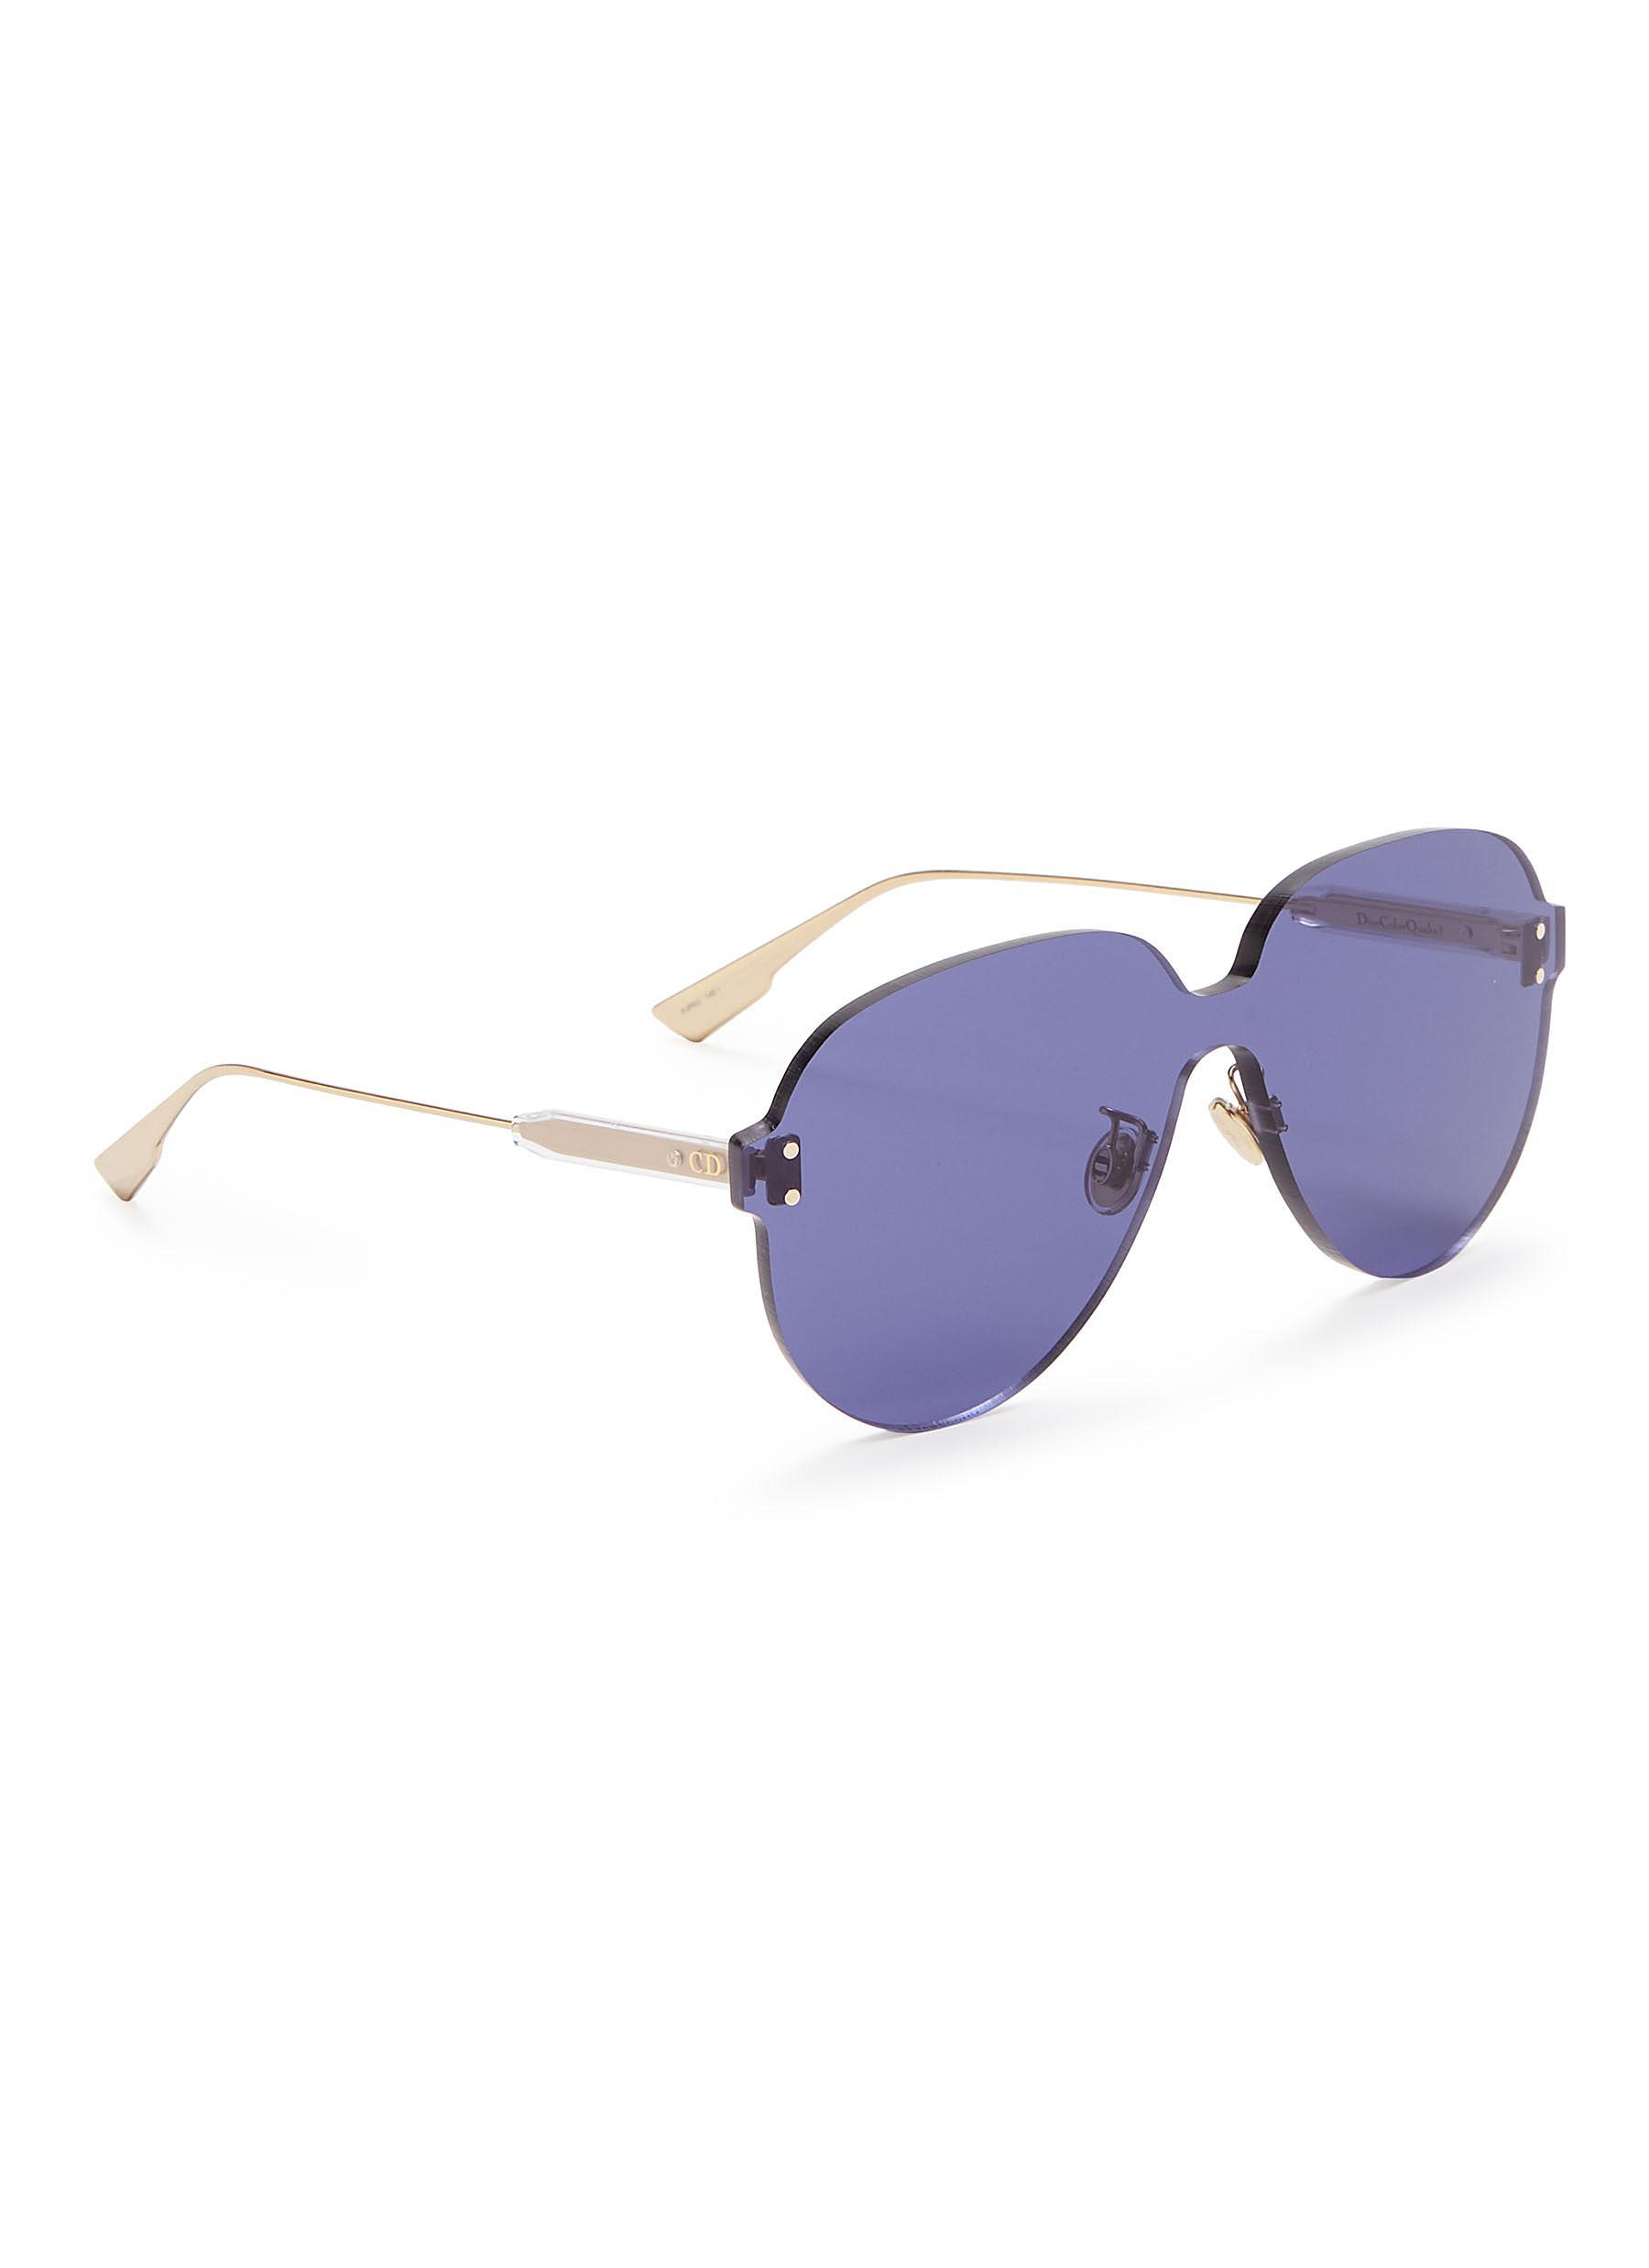 27418294b2d Lyst - Dior   Color Quake 3  Rimless Aviator Sunglasses in Blue ...